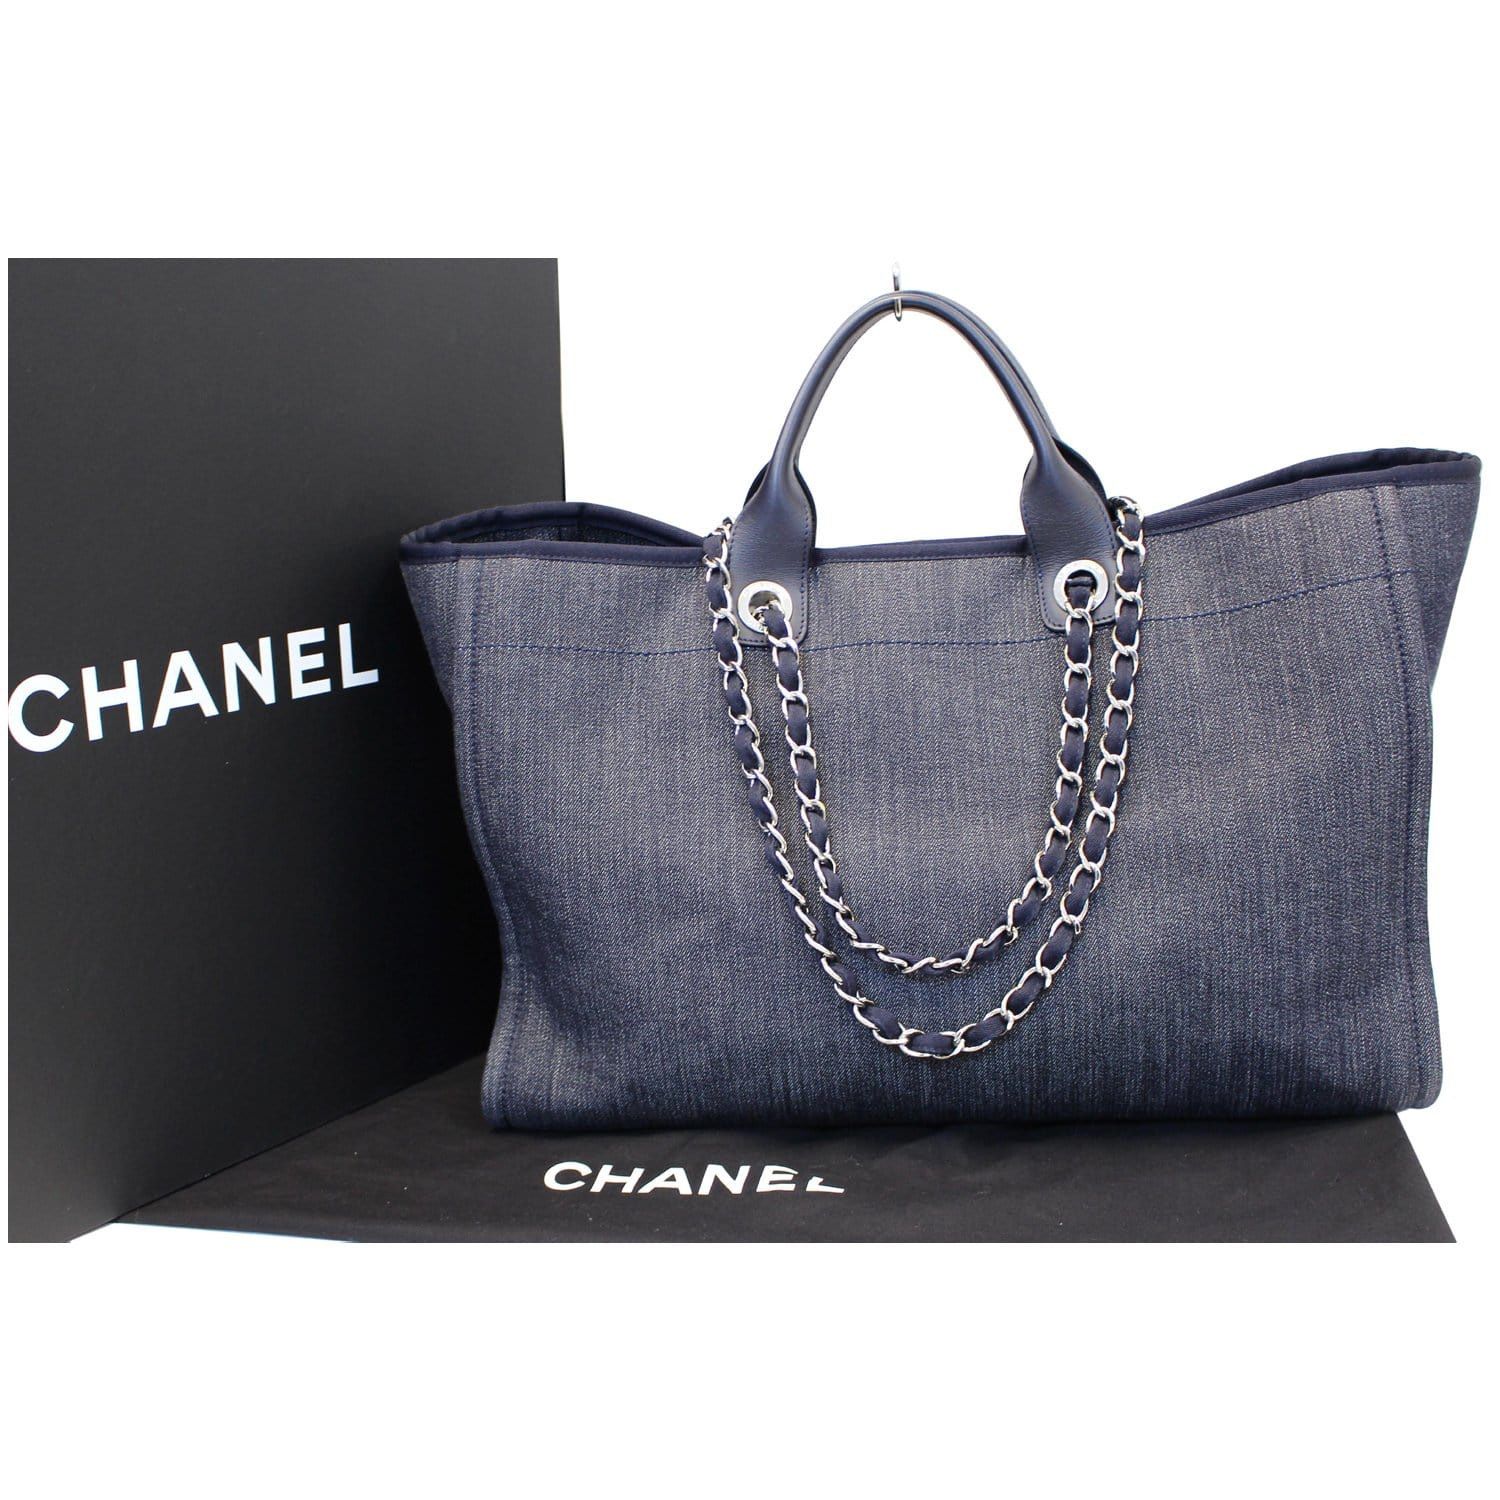 e0781d21bc67 CHANEL Deauville Large Denim Shopping Tote Bag Dark Blue